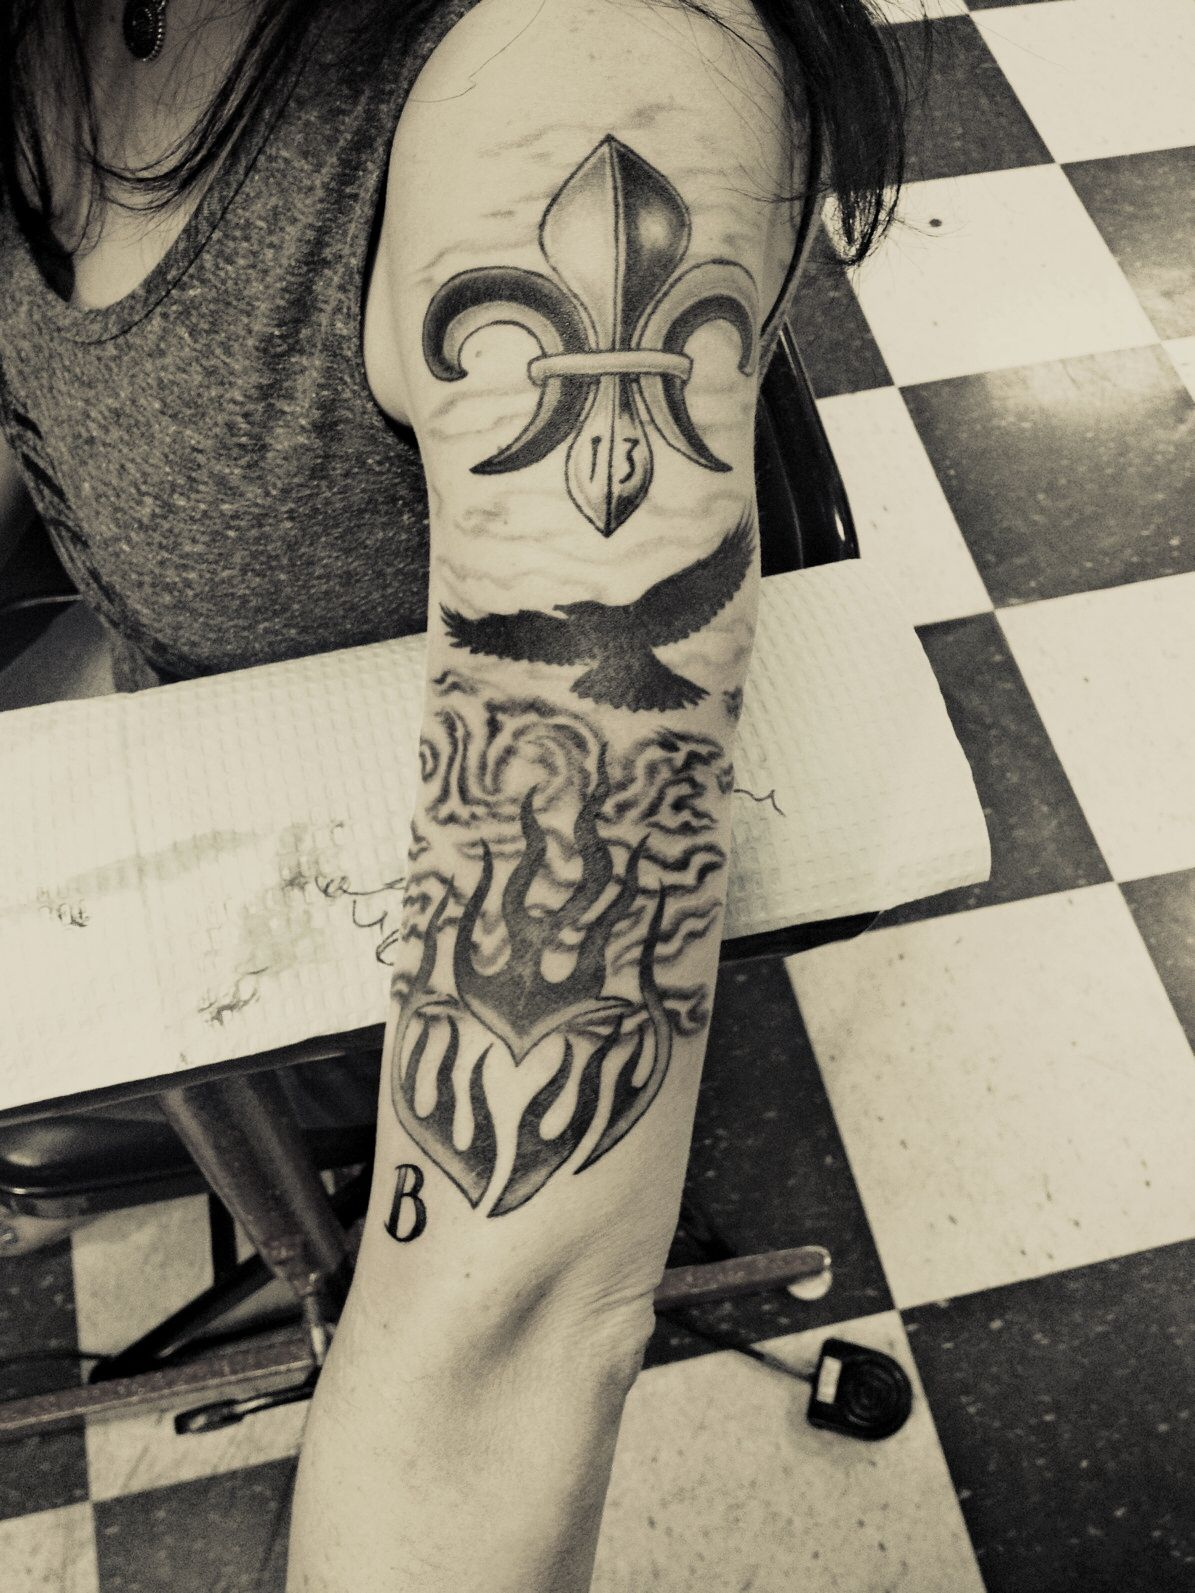 20 hours on my left arm telling the story of the past year of my life